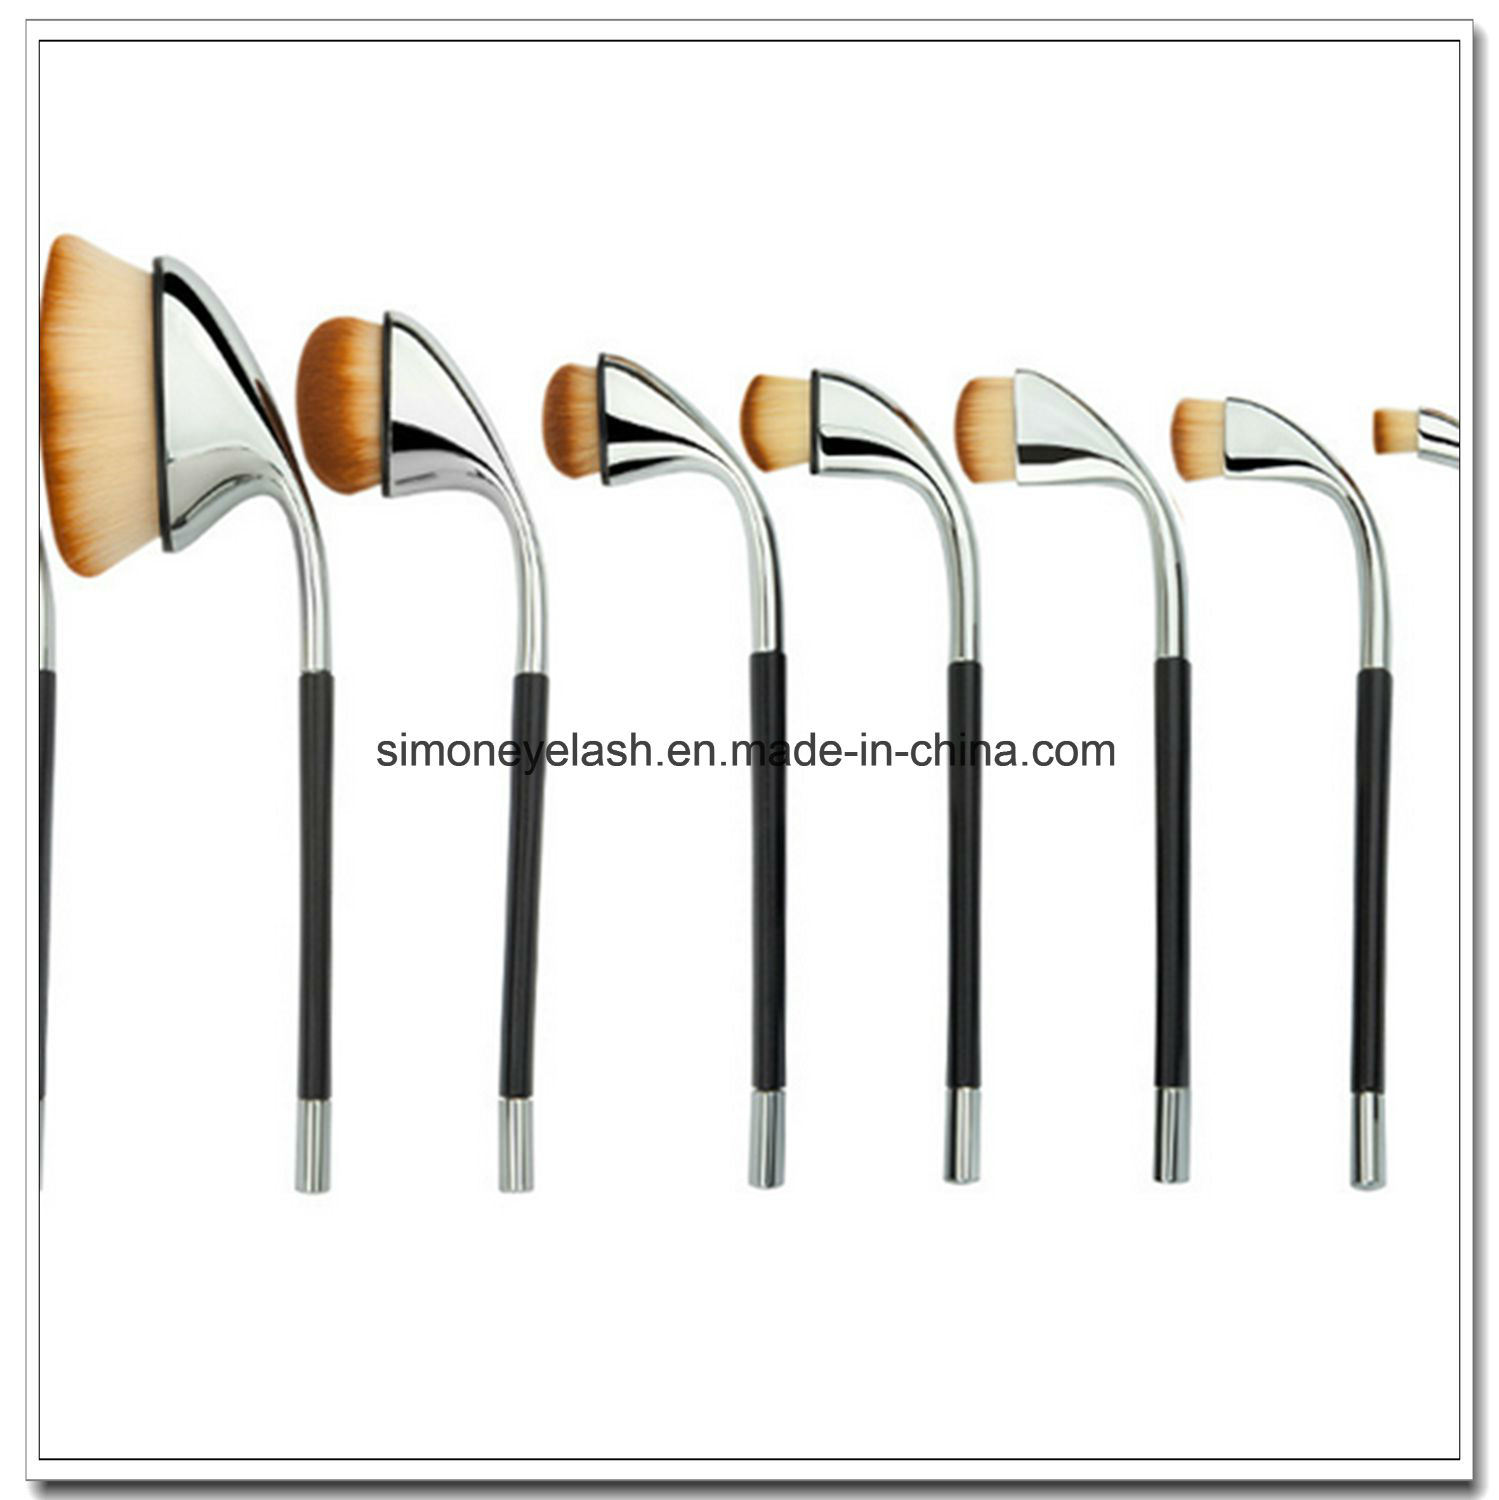 Beauty Equipment Golf Shape Makeup Brush for Make up Artist